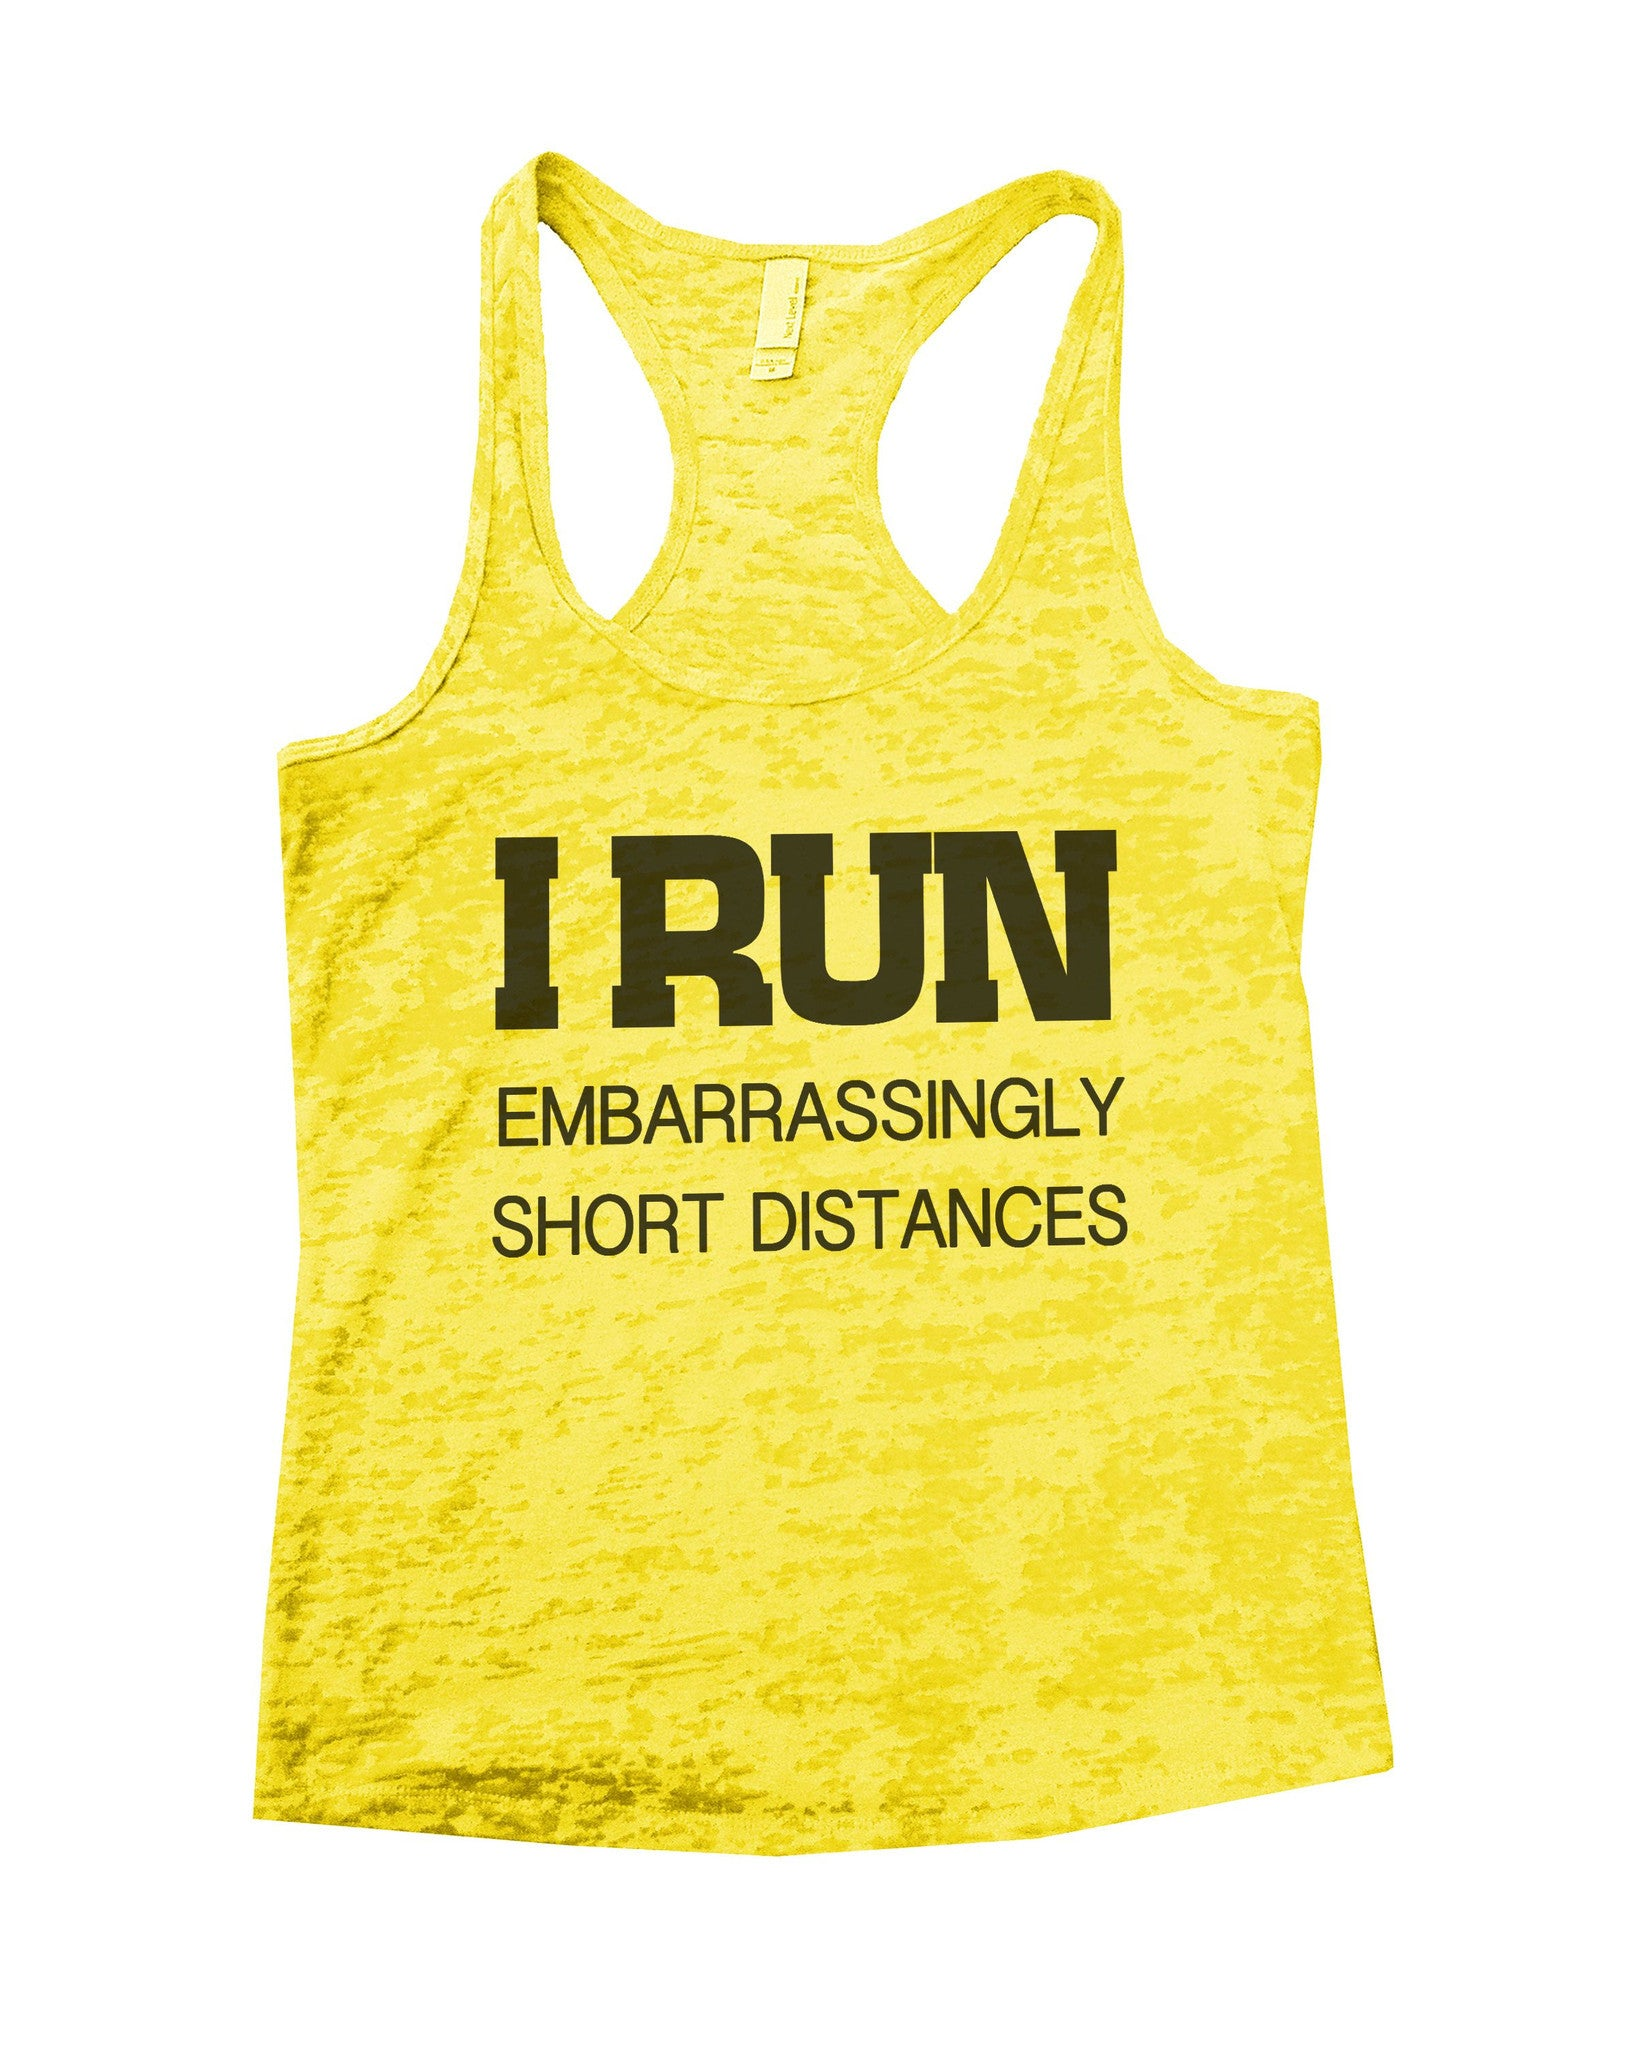 I Run Embarrassingly Short Distances Burnout Tank Top By BurnoutTankTops.com - 733 - Funny Shirts Tank Tops Burnouts and Triblends  - 6